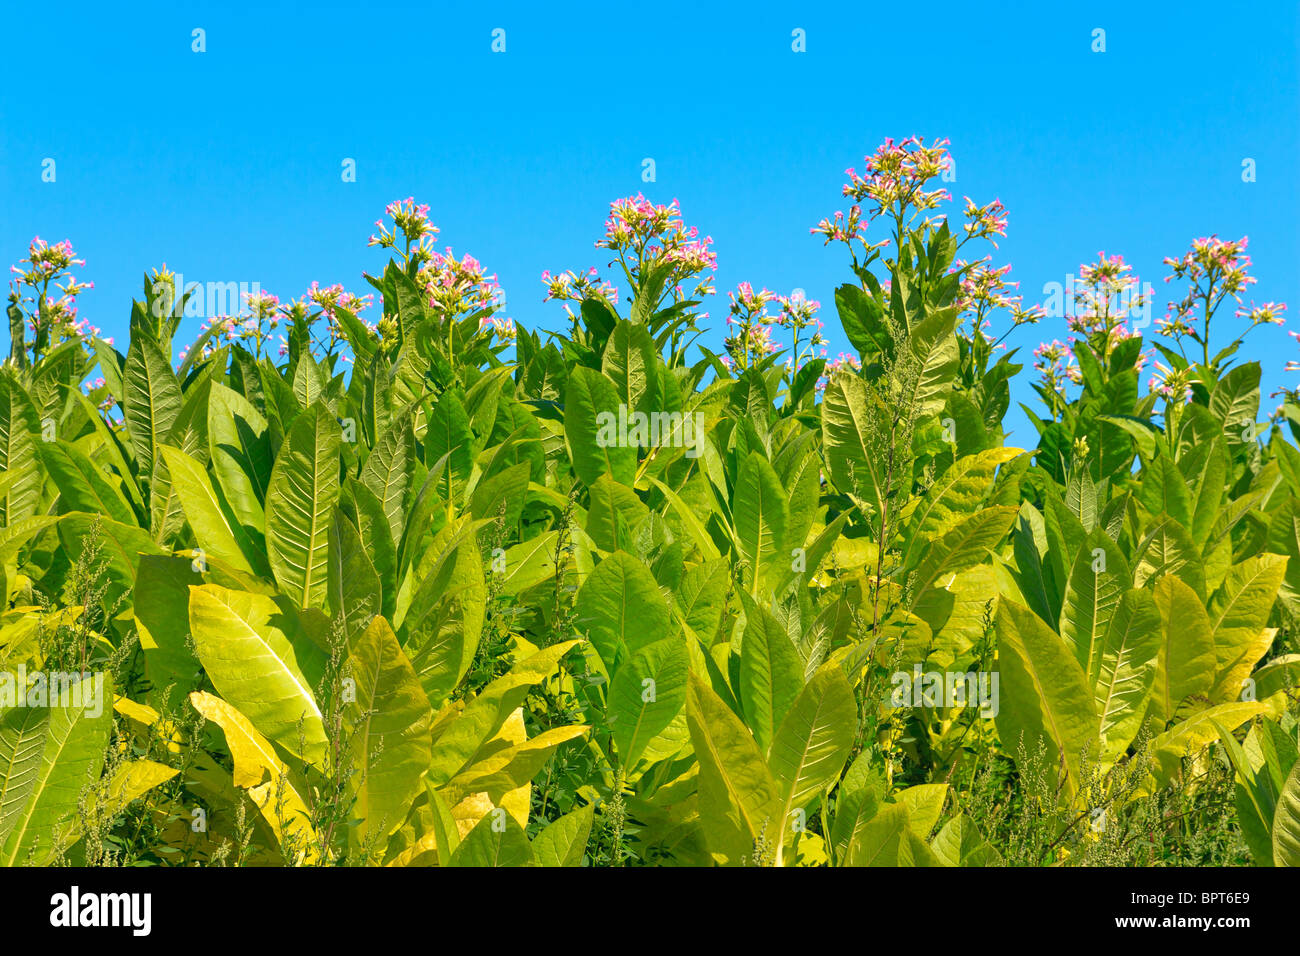 Tobacco plants with leaves, flowers and buds Stock Photo